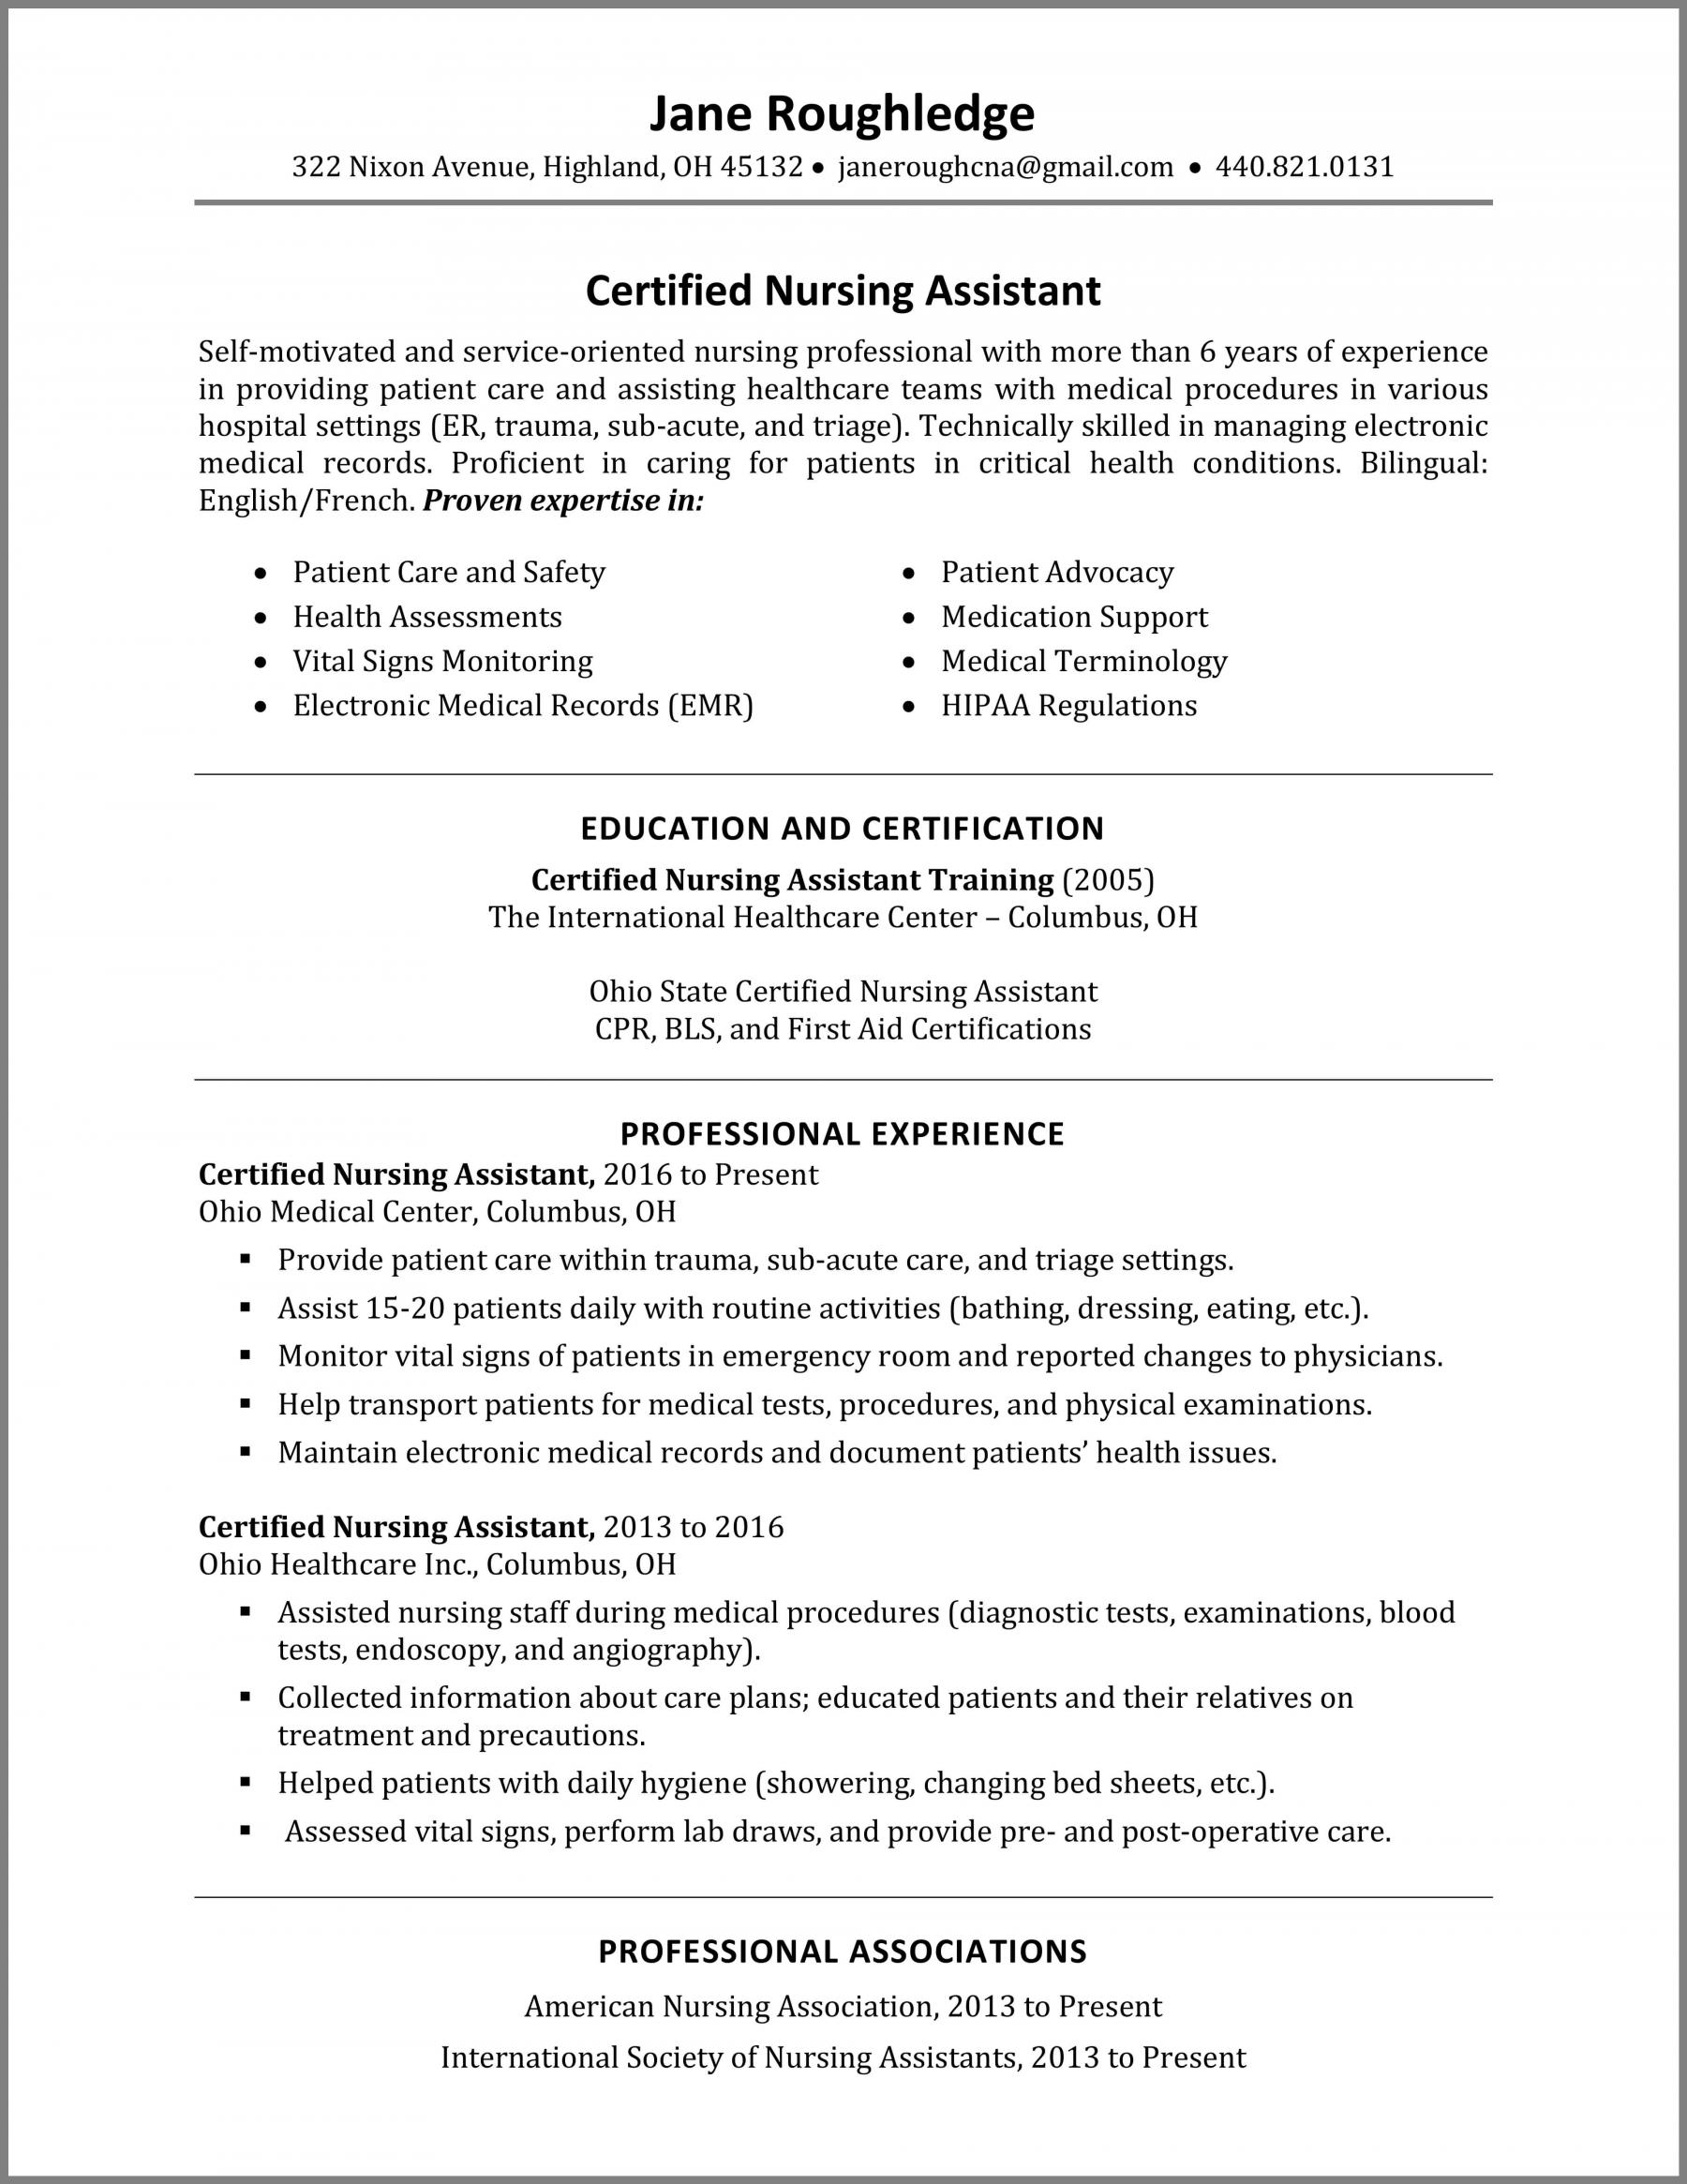 cna resume for hospital x5rx7sgwpiwc7jikbk1v skills adjectives lash stylist soccer coach Resume Cna Resume For Hospital